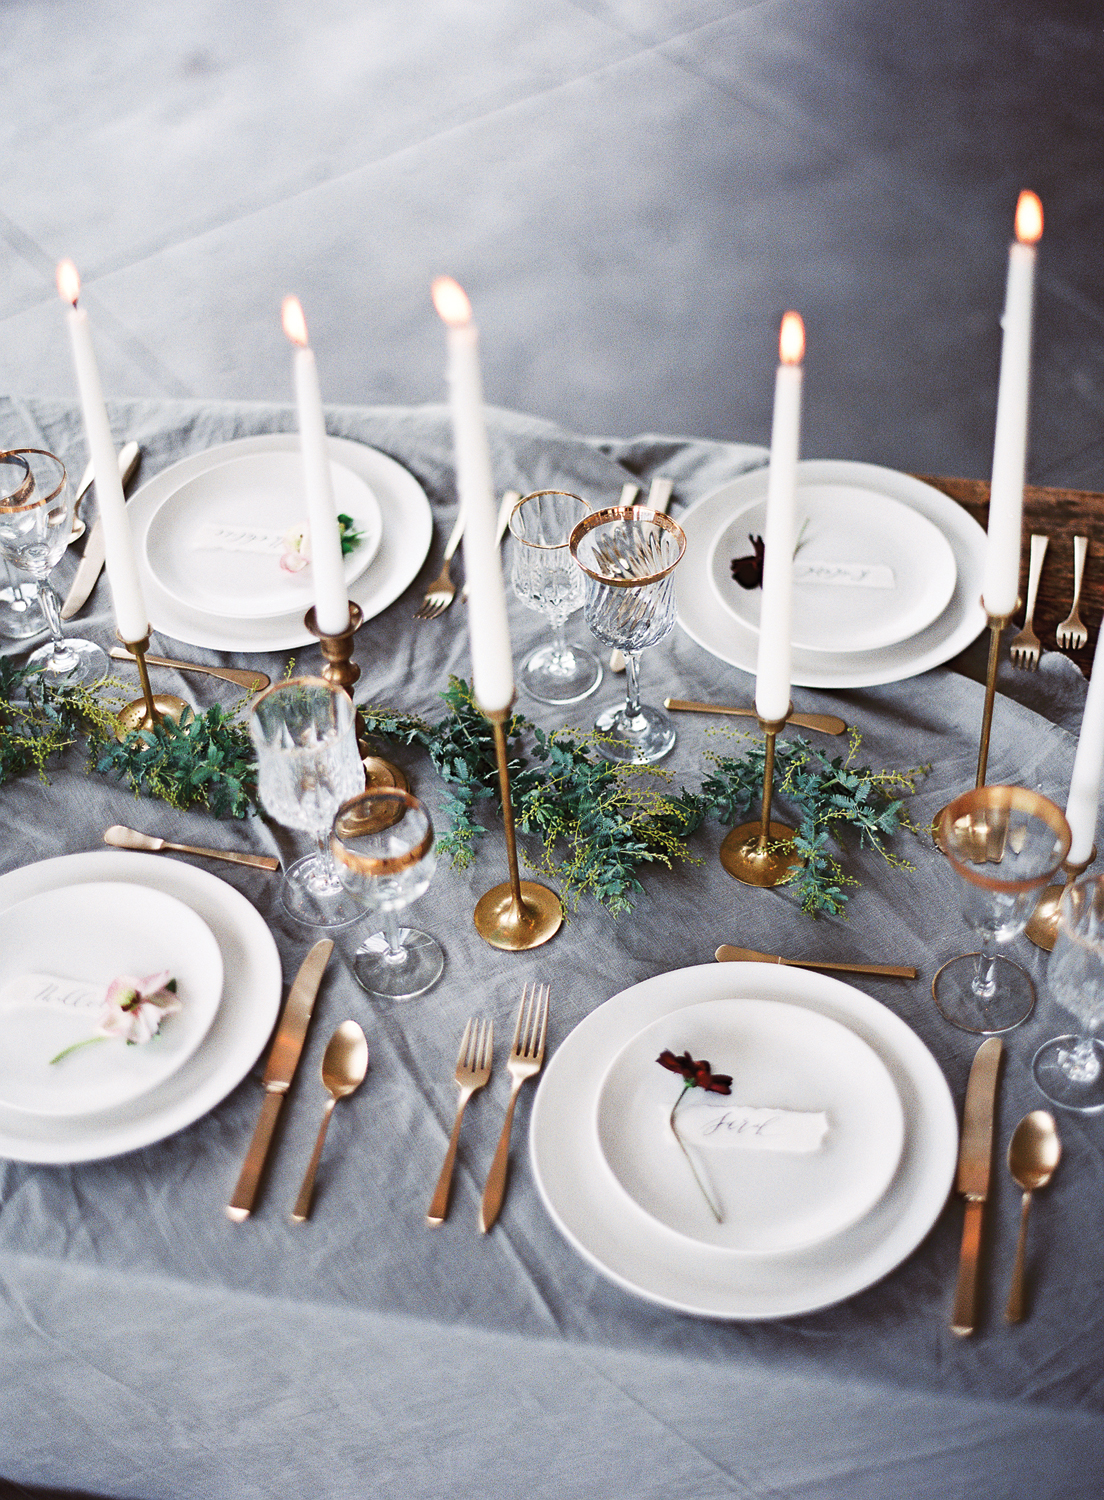 wedding_trend_ideas_and_styling_8.jpg